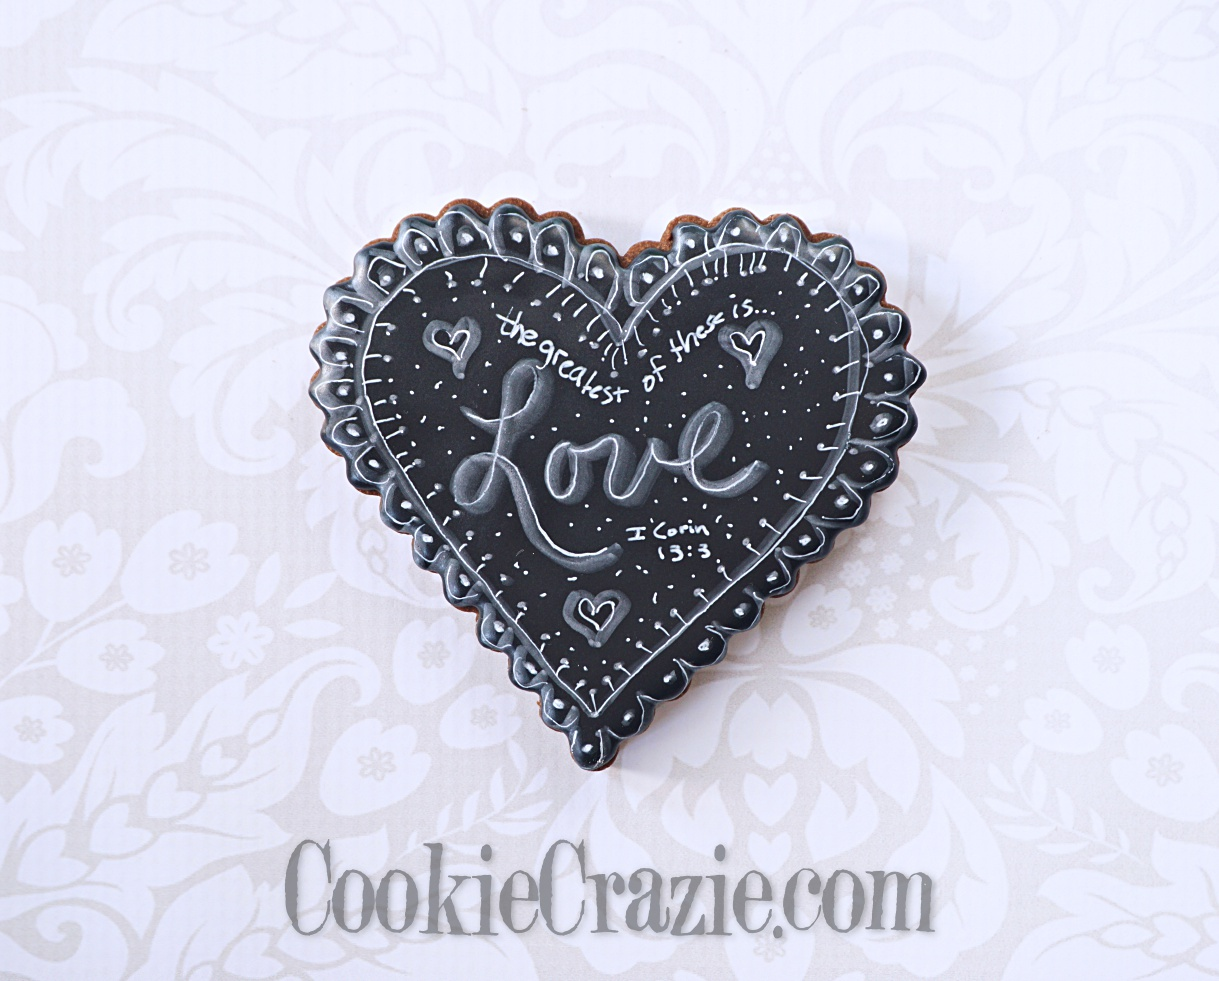 Chalkboard Valentines Heart Decorated Sugar Cookie YouTube video  HERE